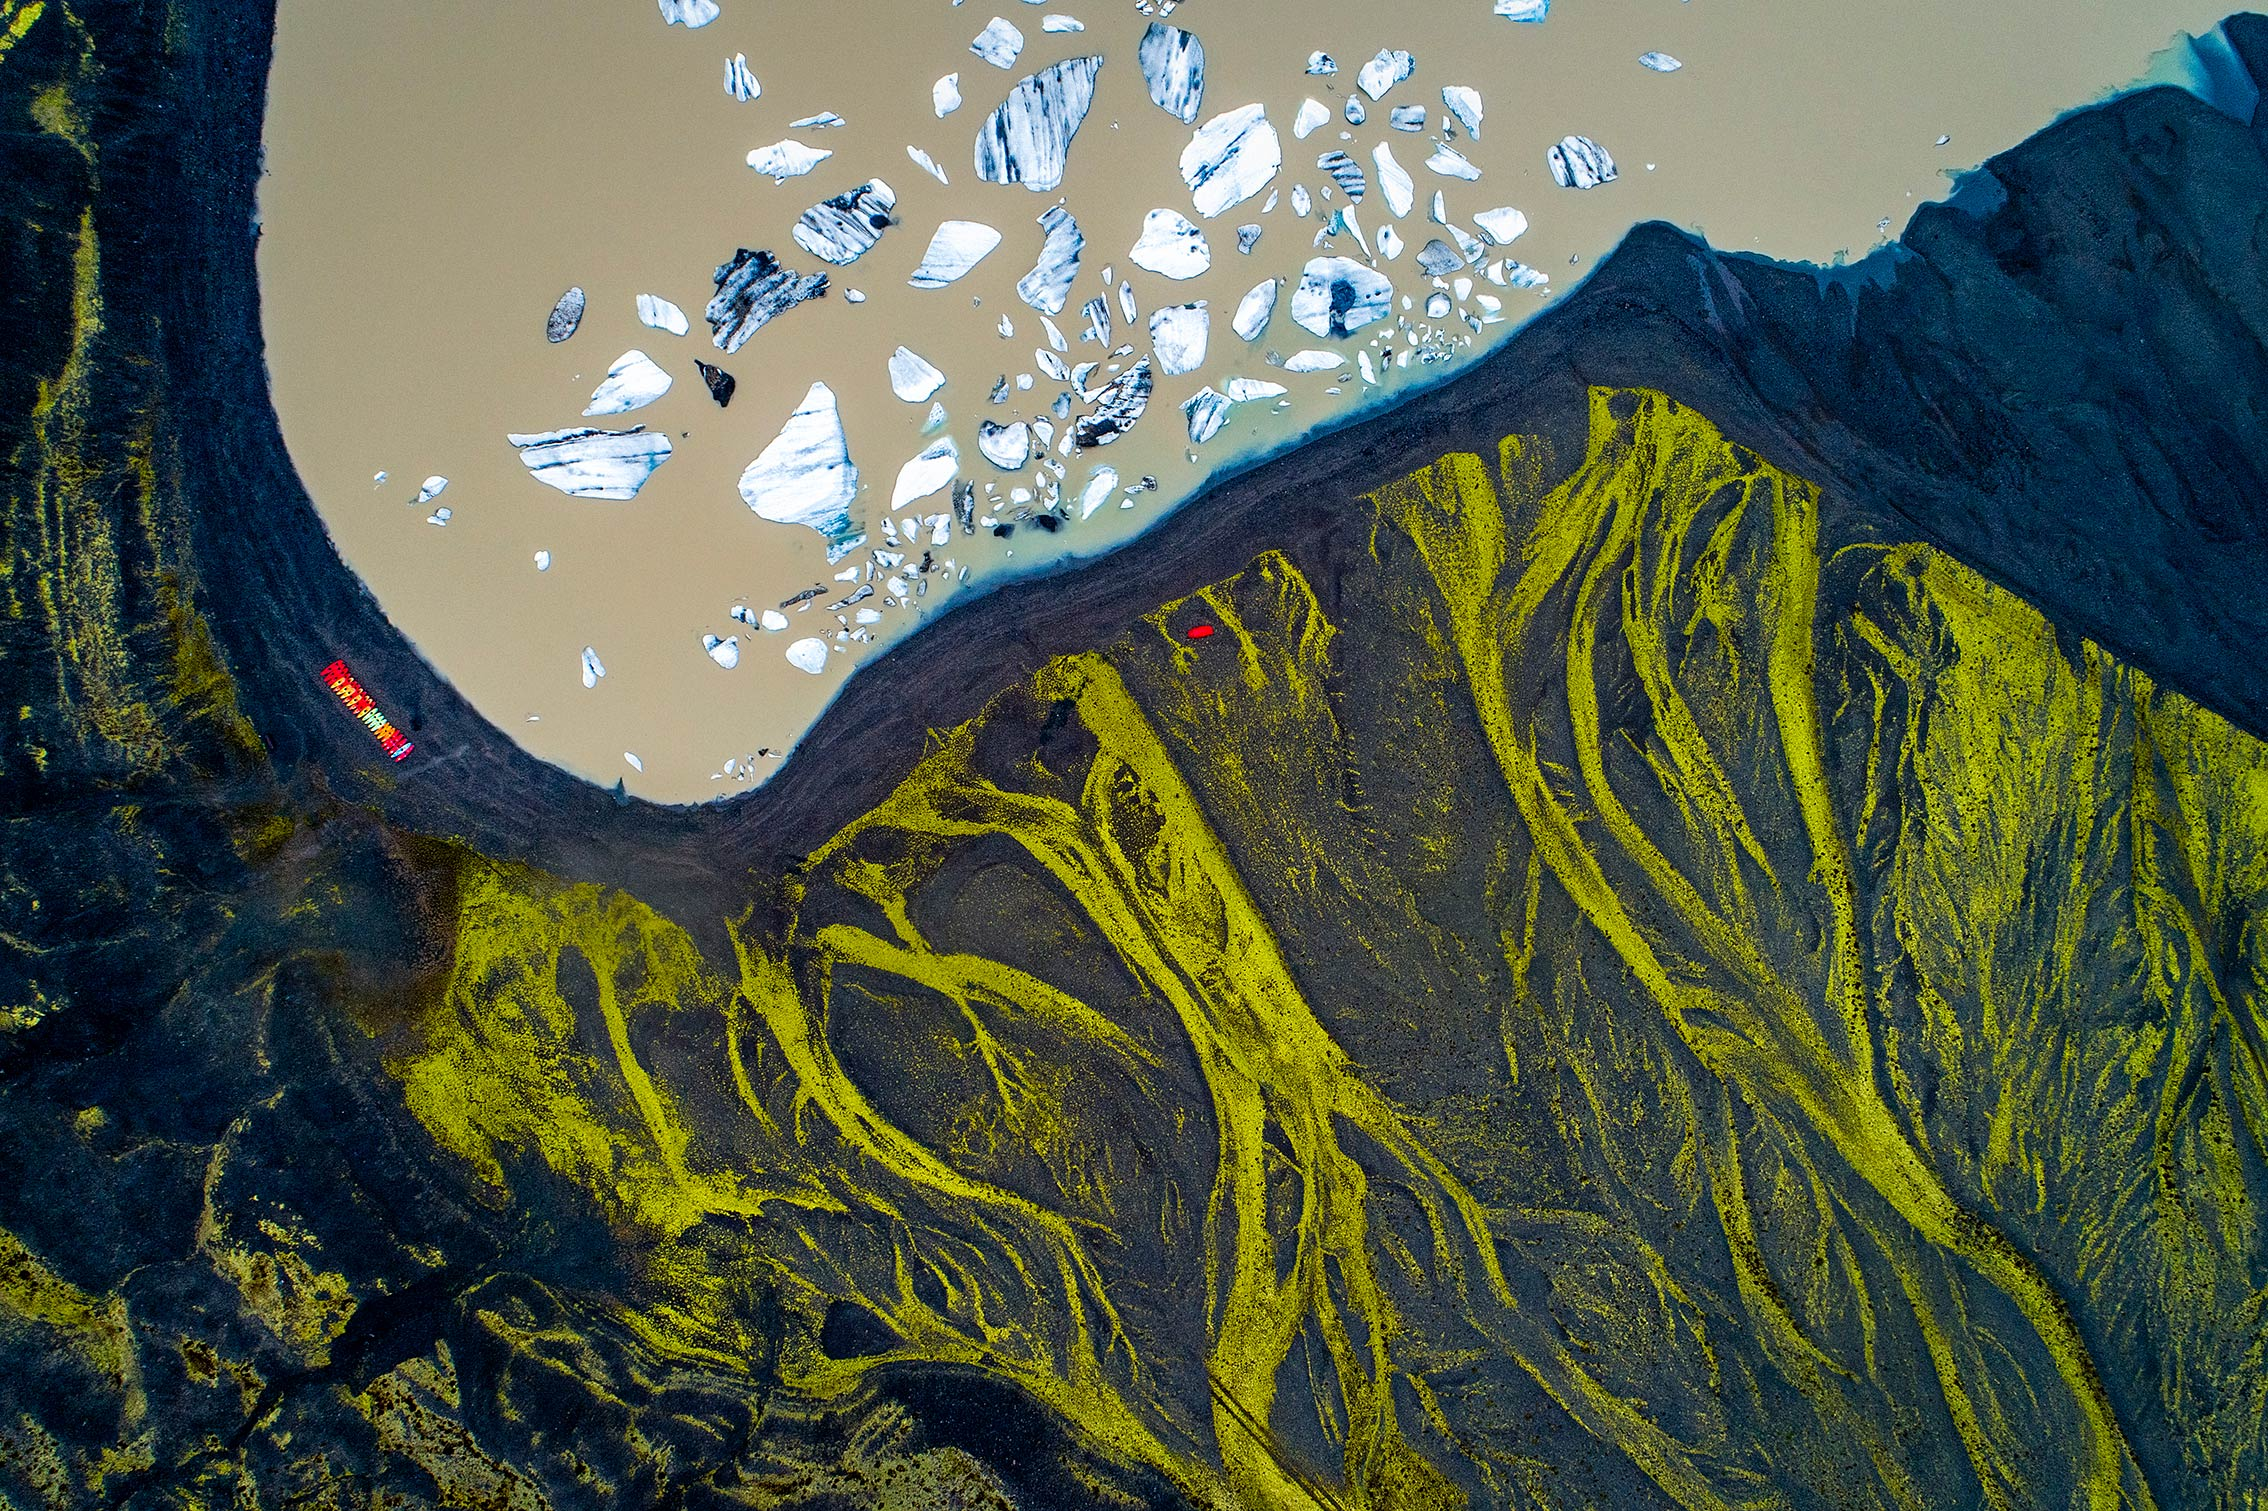 glacier lagoon with icebergs and moss growing over rocks ©KontraPixel